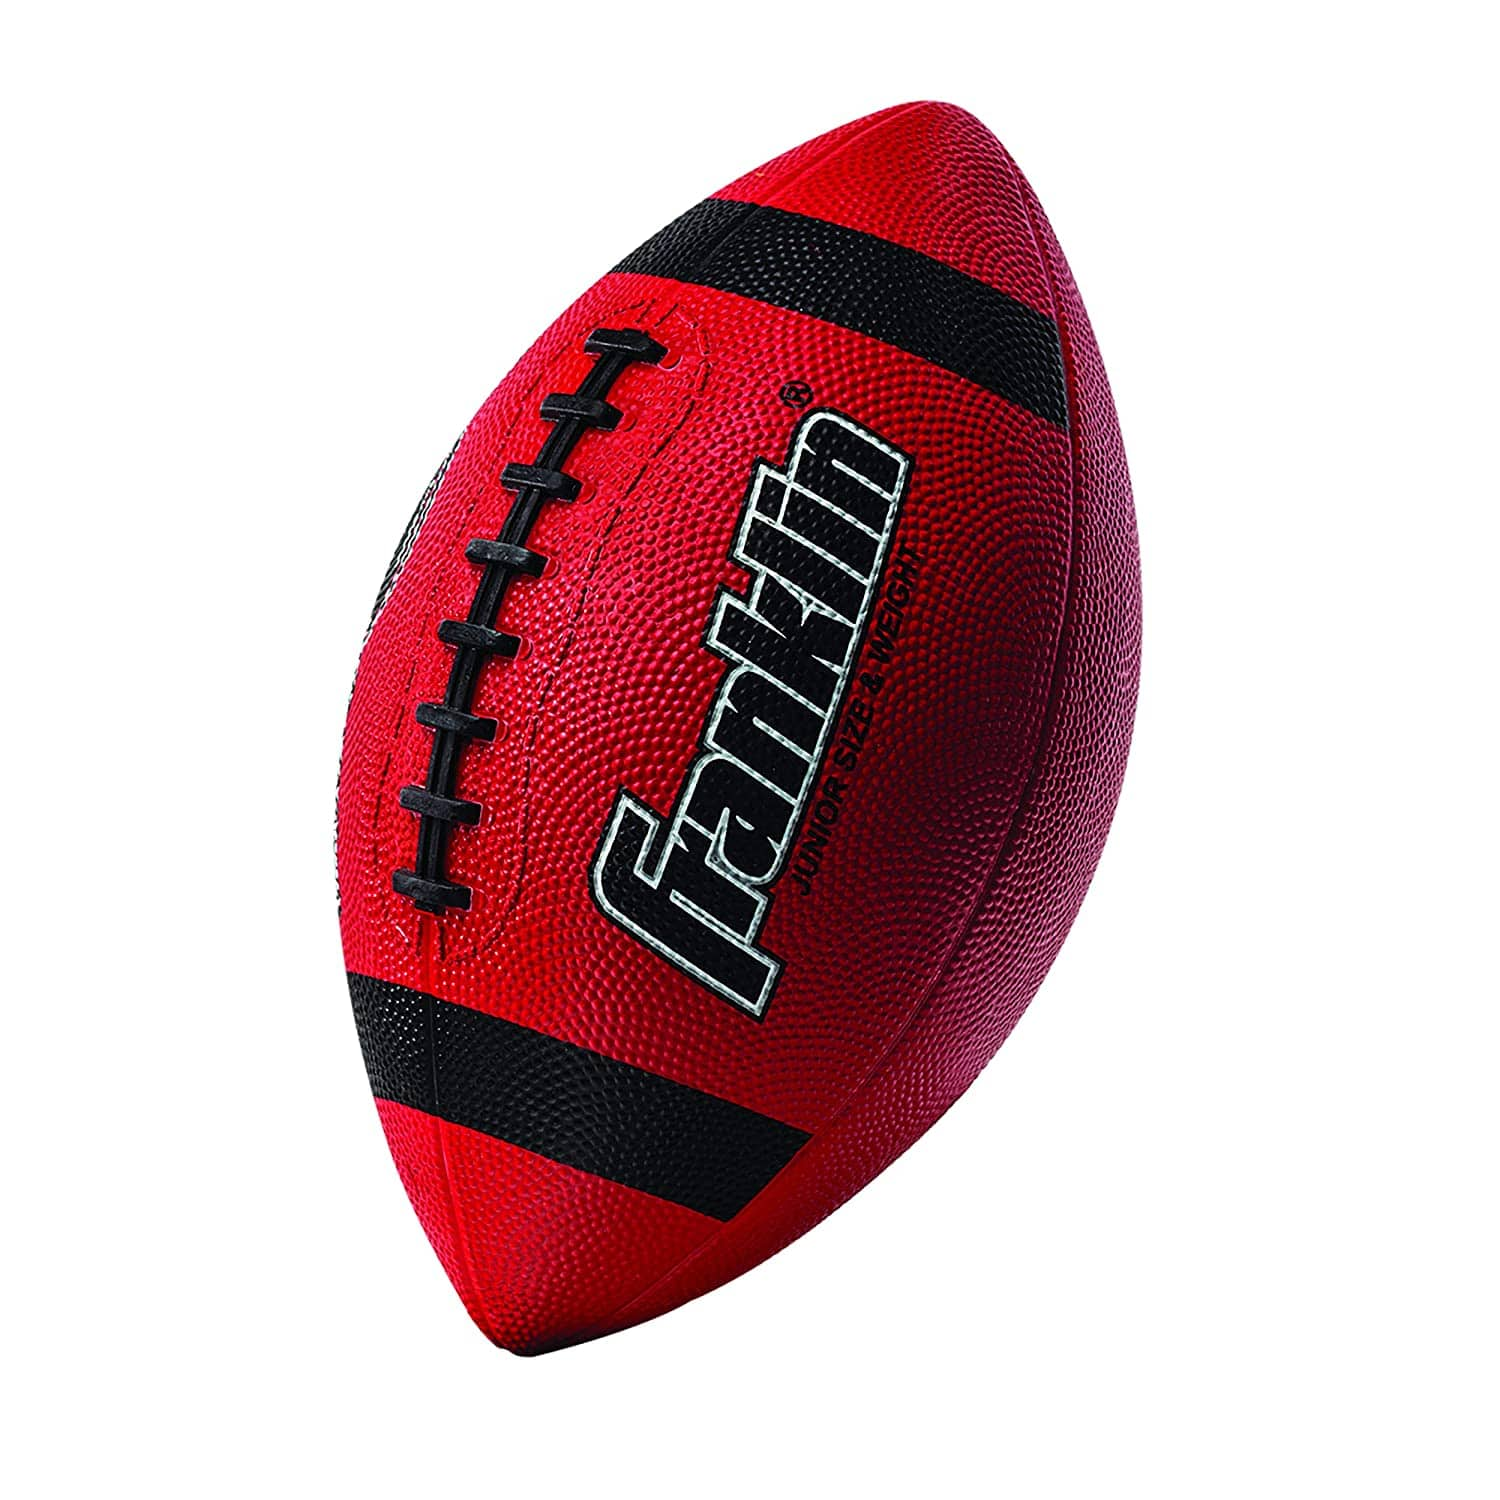 Amazon - Franklin Sports Grip-Rite 100 Rubber Junior Football - $4.88